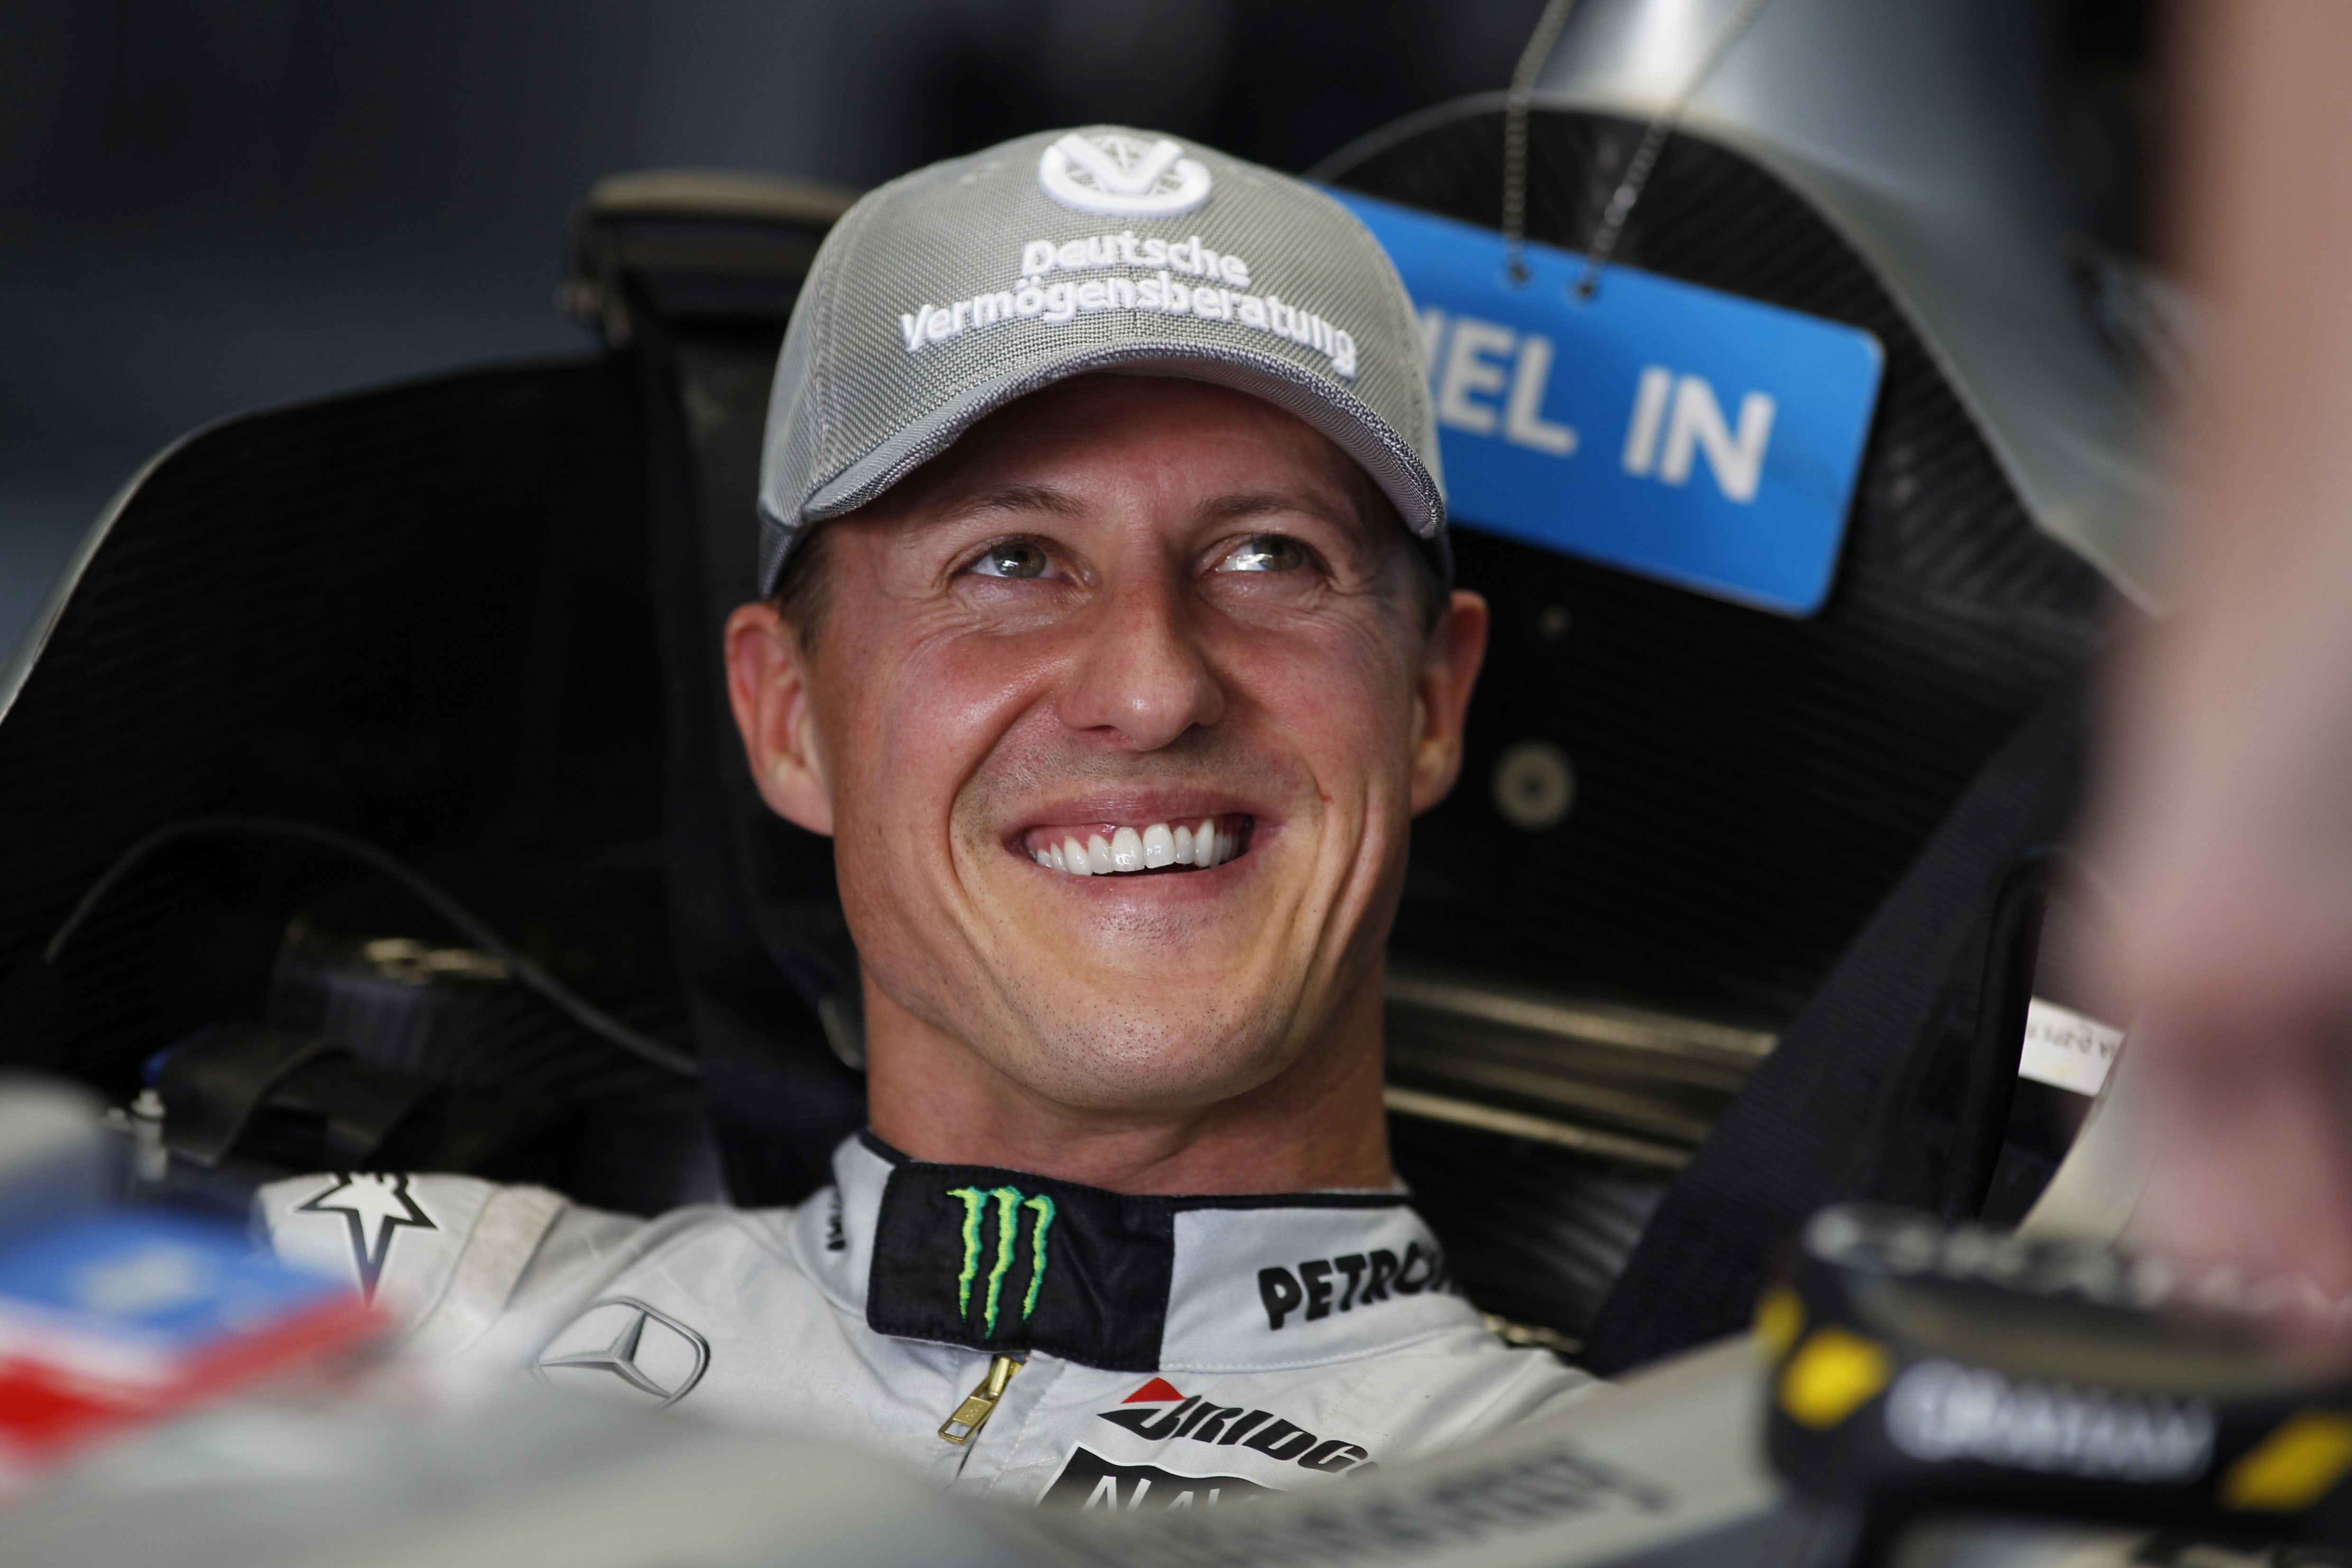 Michael Schumacher Images